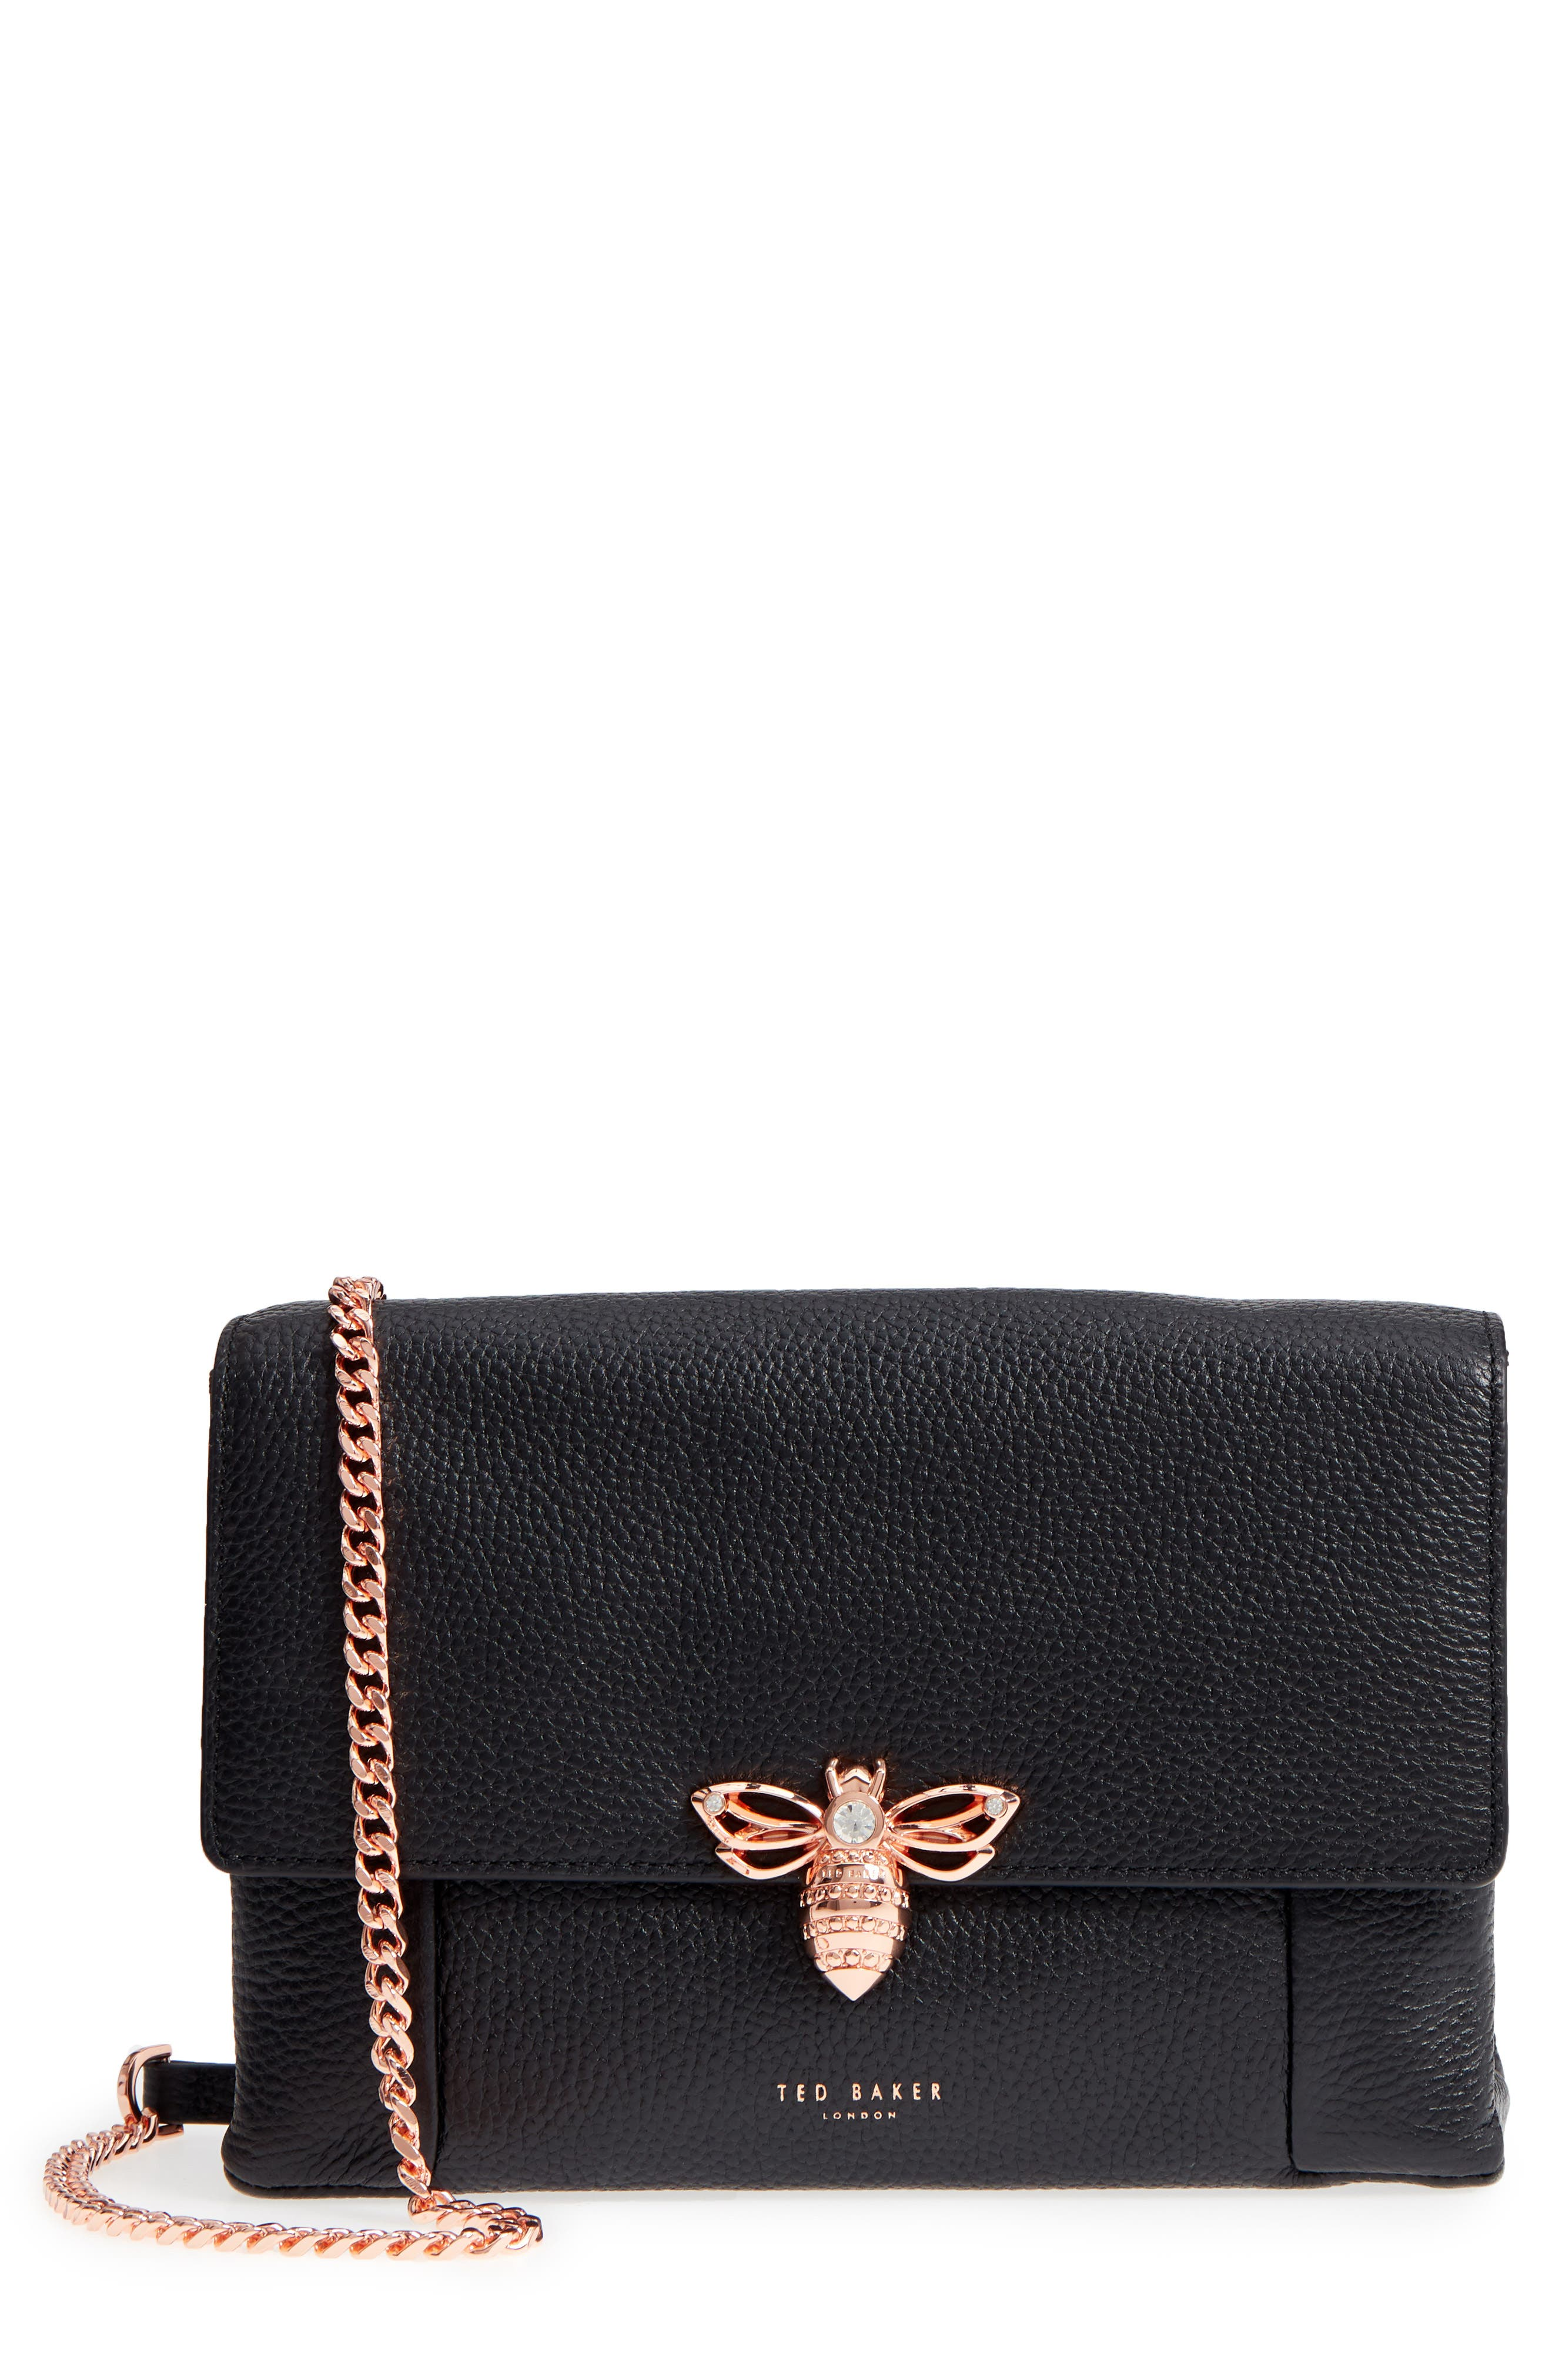 TED BAKER LONDON Zzlee Bee Embellished Crossbody Bag, Main, color, 001